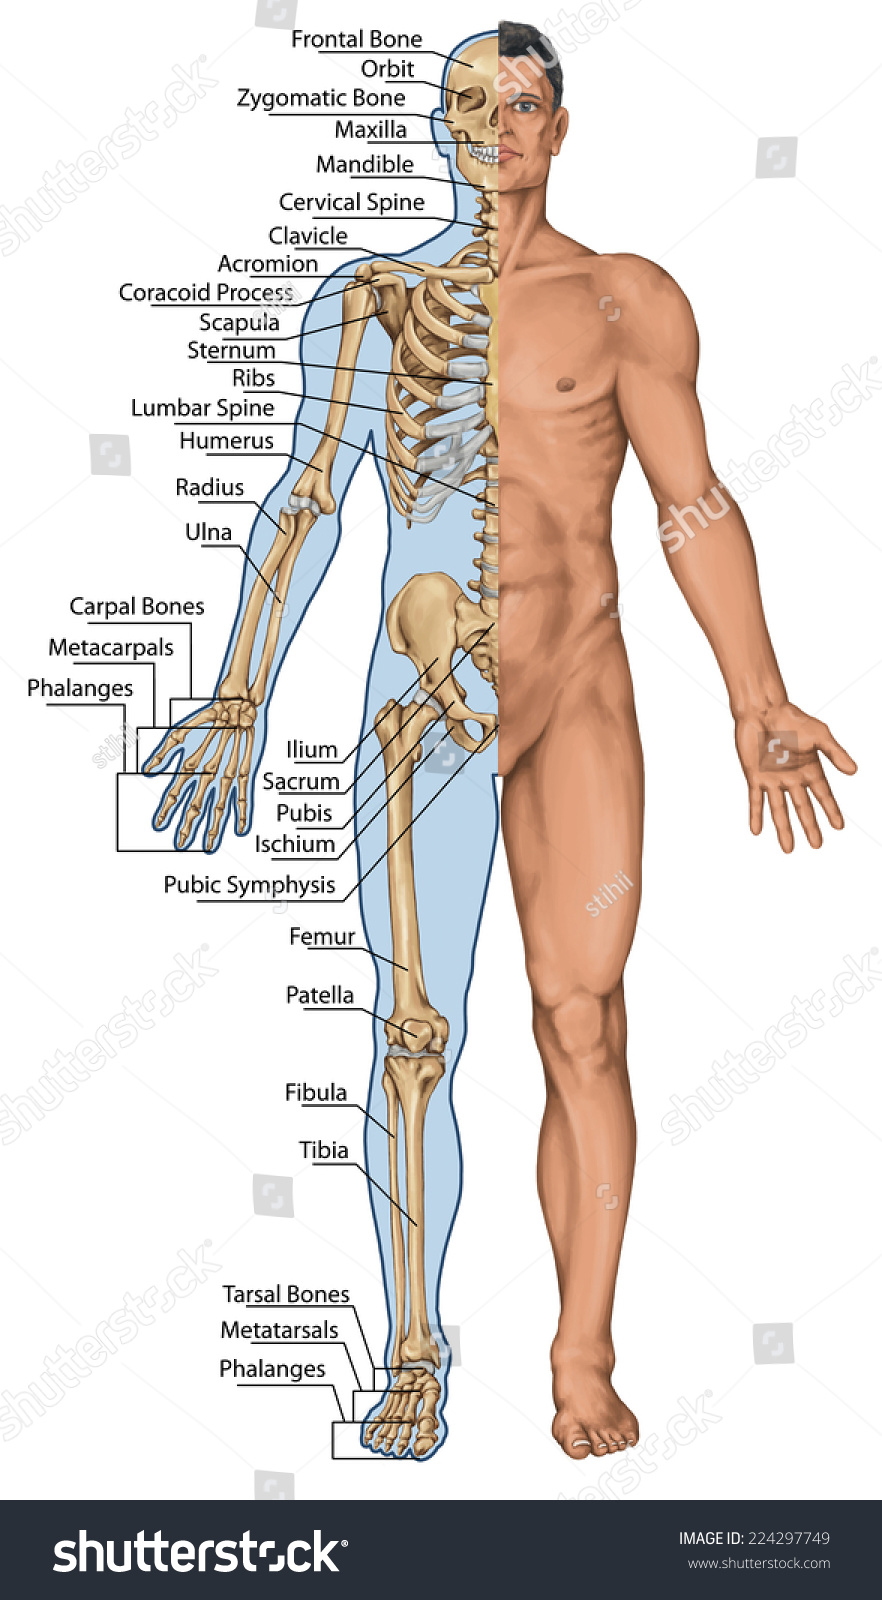 Anatomical Board Anatomical Body Human Skeleton Stock Illustration